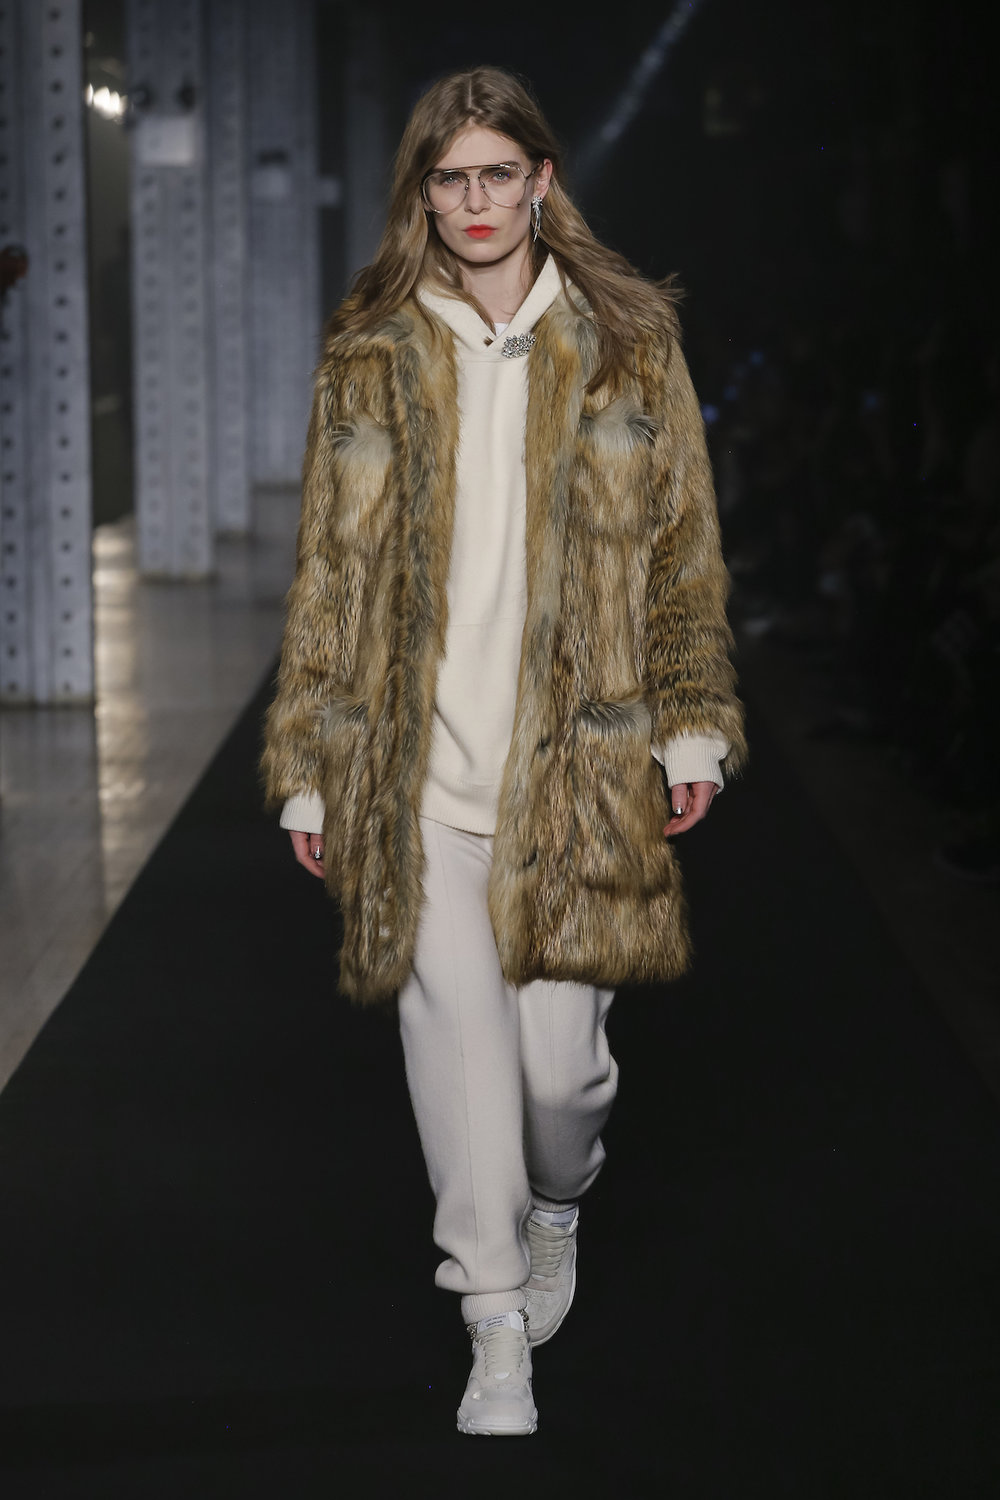 ZADIG & VOLTAIRE FW19 NEW YORK FASHION WEEK 02/11/2019